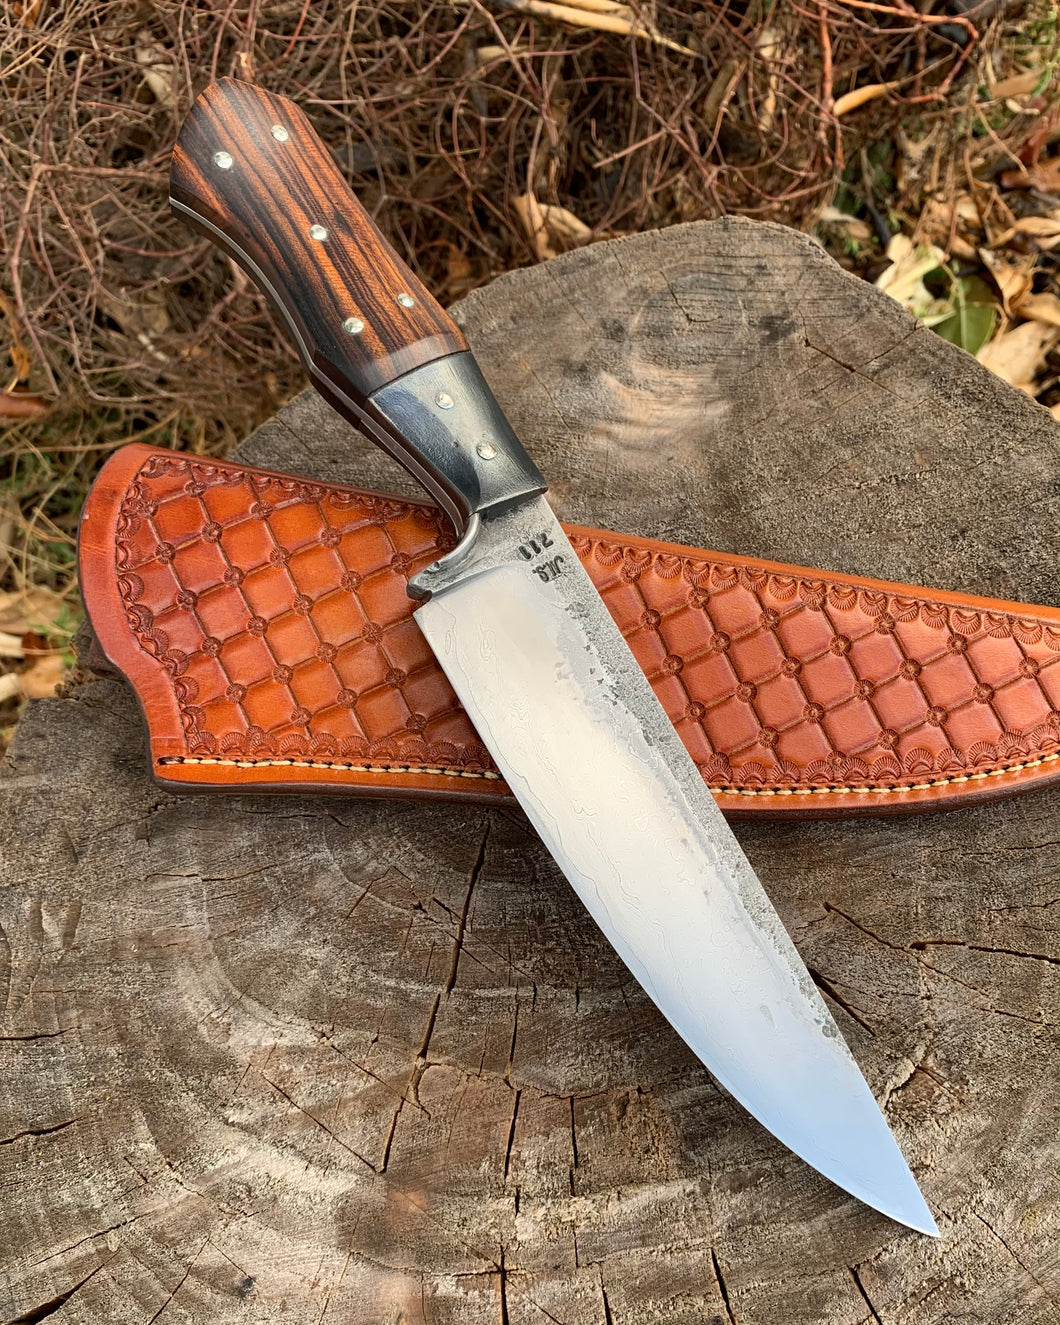 Wilburn Forge camp knife